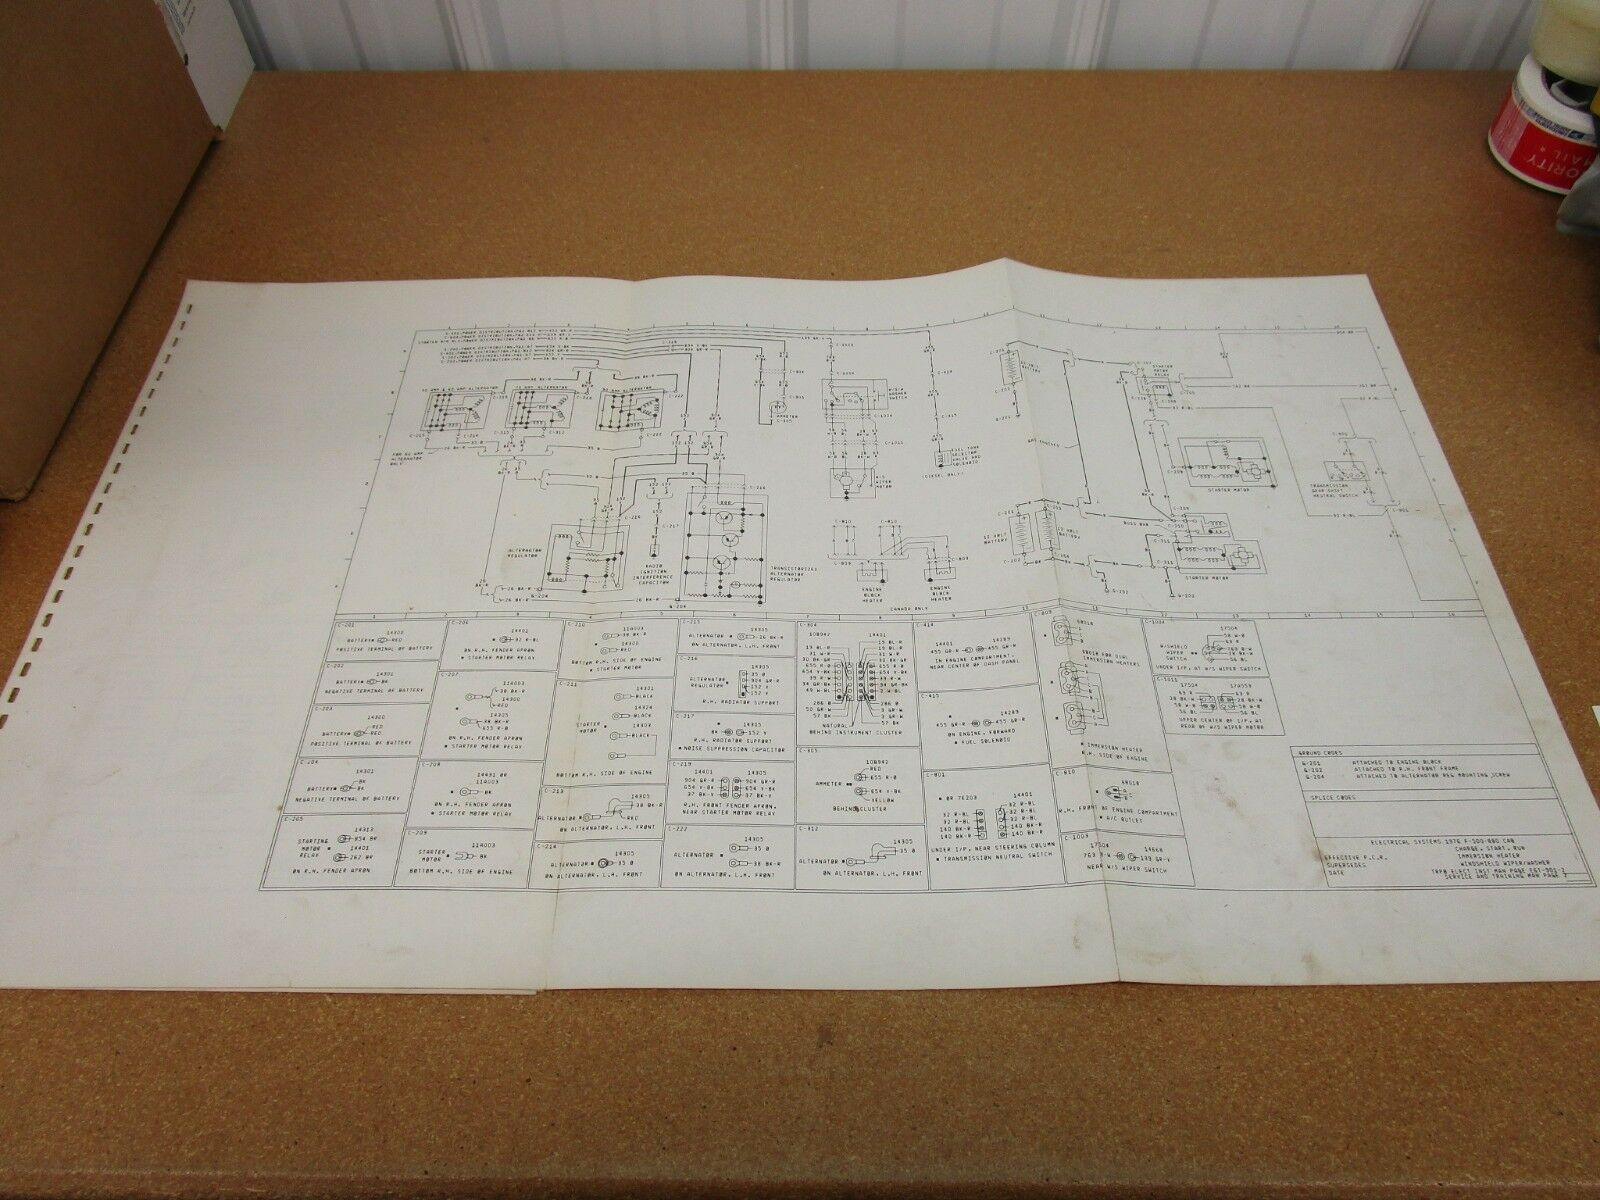 1976 Ford F600 Wiring Diagram Building A 1989 F700 F500 F750 Truck Sheet Schematics Econoline